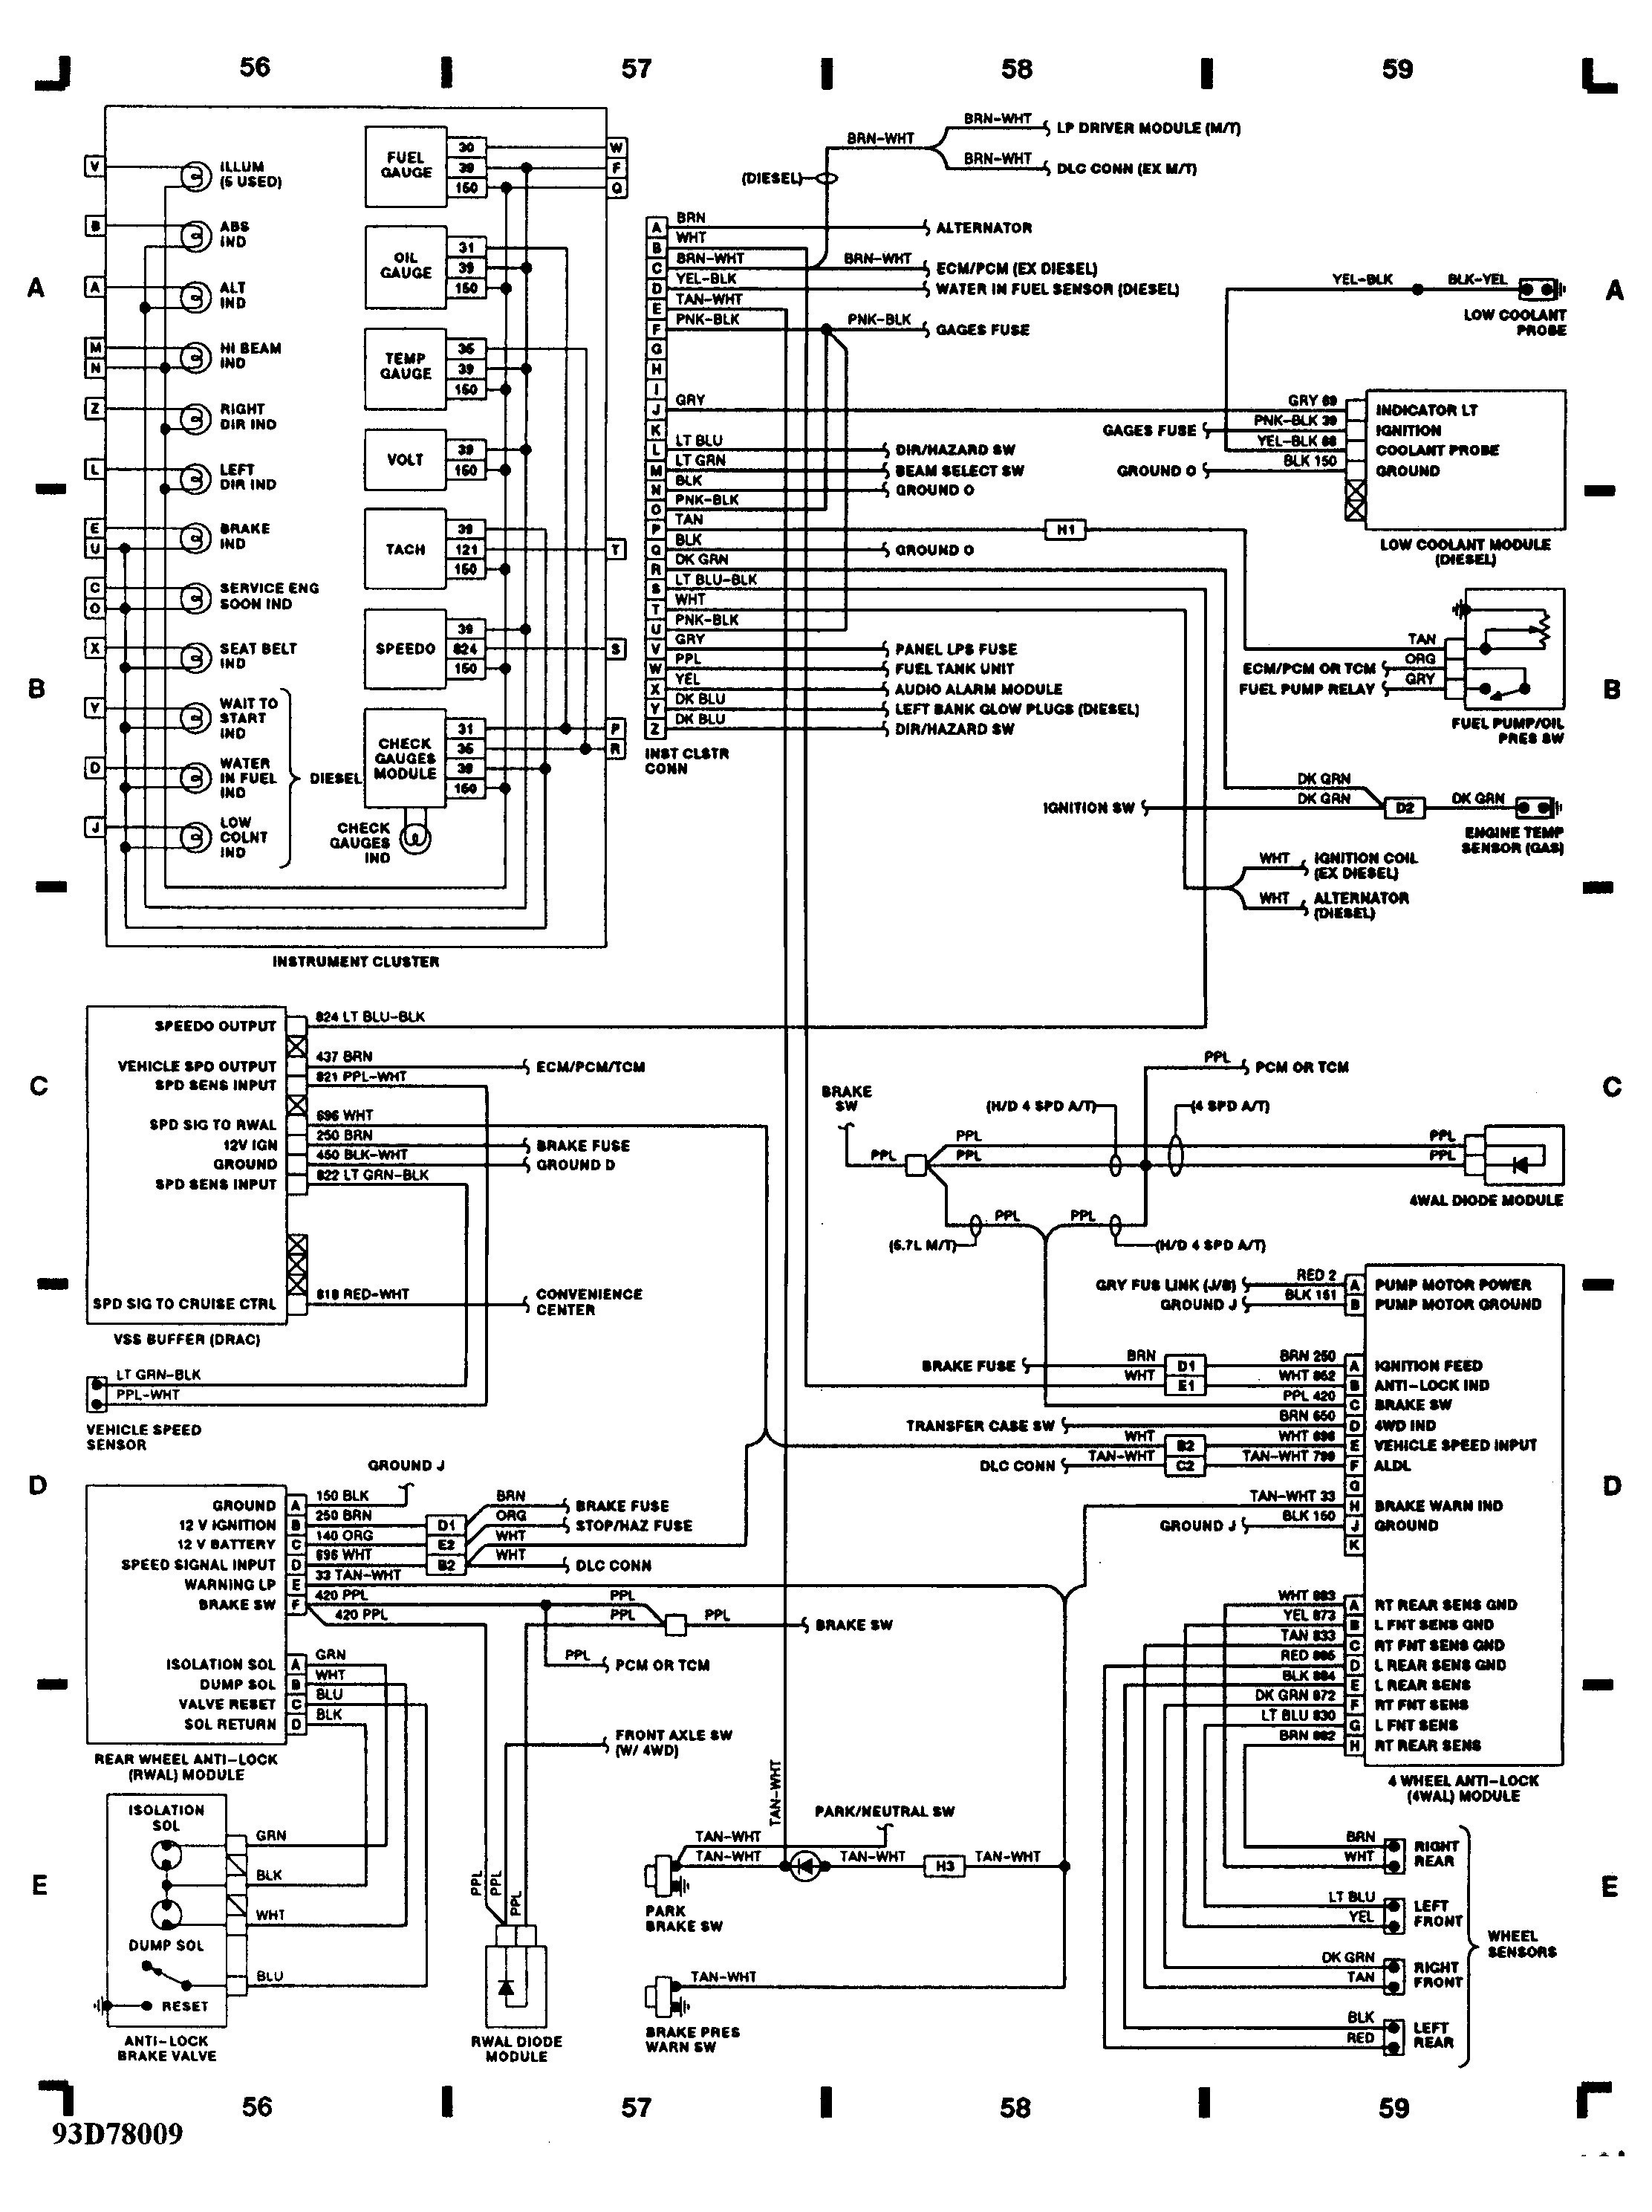 Spark Plug Wiring Diagram For 95 Chevy Silverado Circuit Curt Hitch Furthermore Rh Front Axle Cv 1995 Suburban Wire Diy Enthusiasts Broadwaycomputers Us 2005